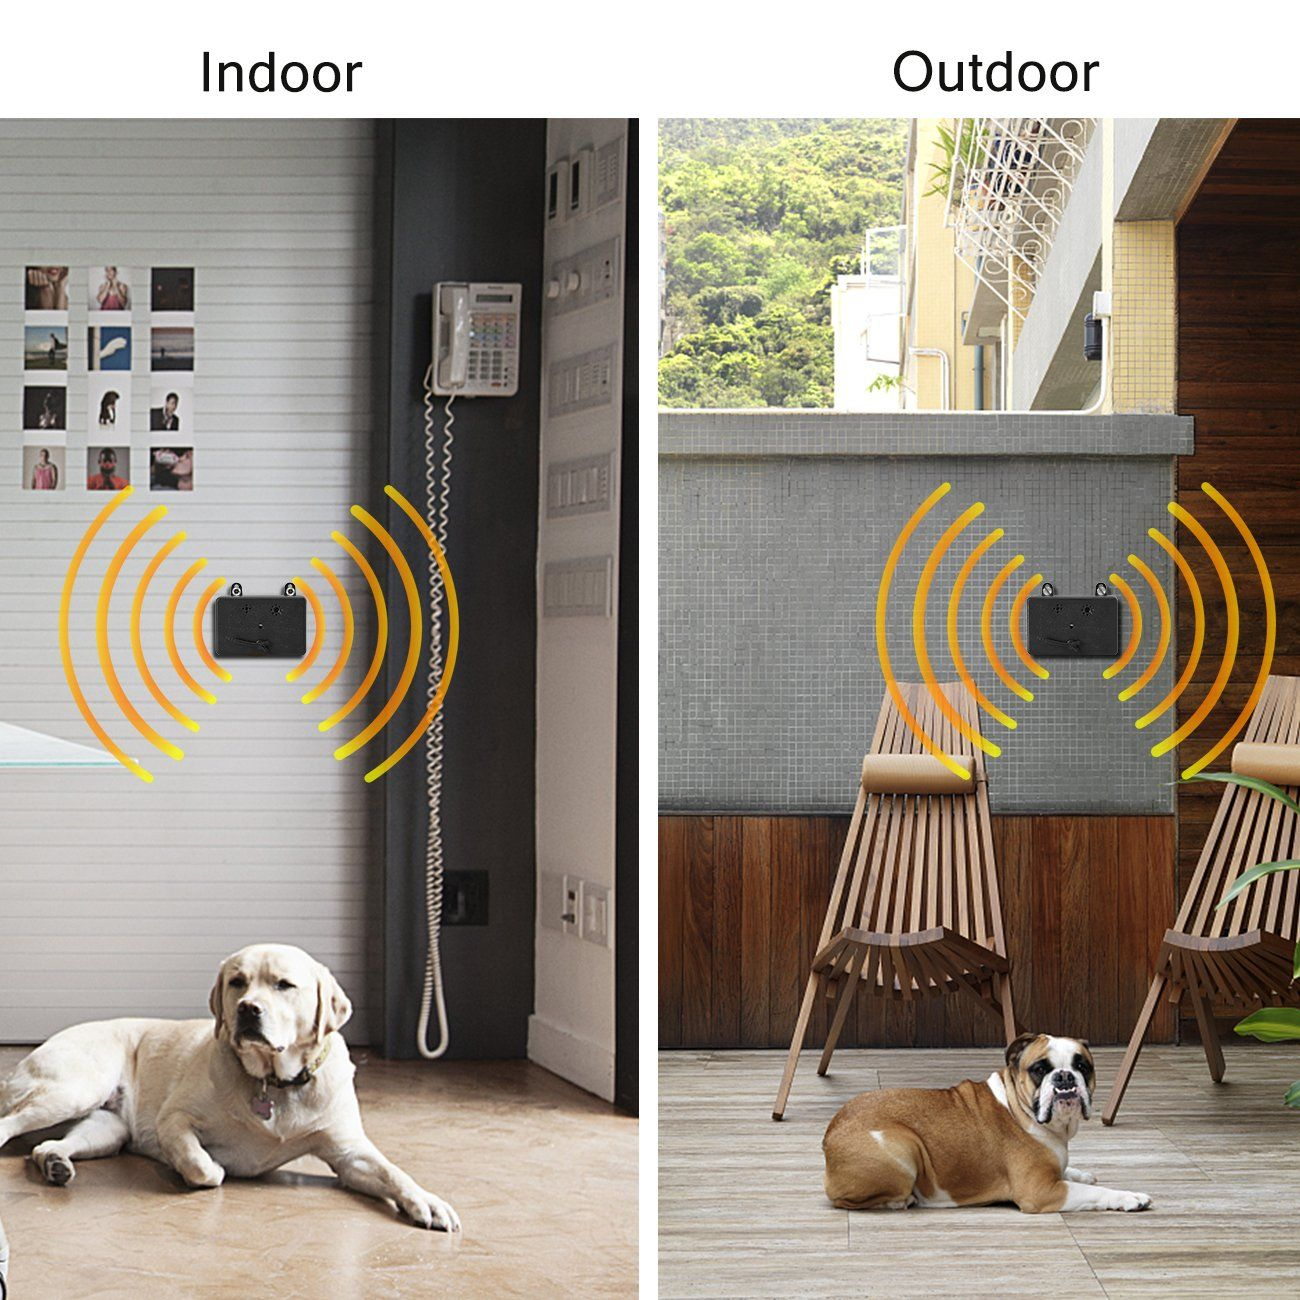 Anti Barking Device Dog Deterrent Training Tool Stop Barking Safe For All Size Dogs Outdoor Indoor Use Up To 50 Feet Dog Deterrent Dog Training Outdoor Dog